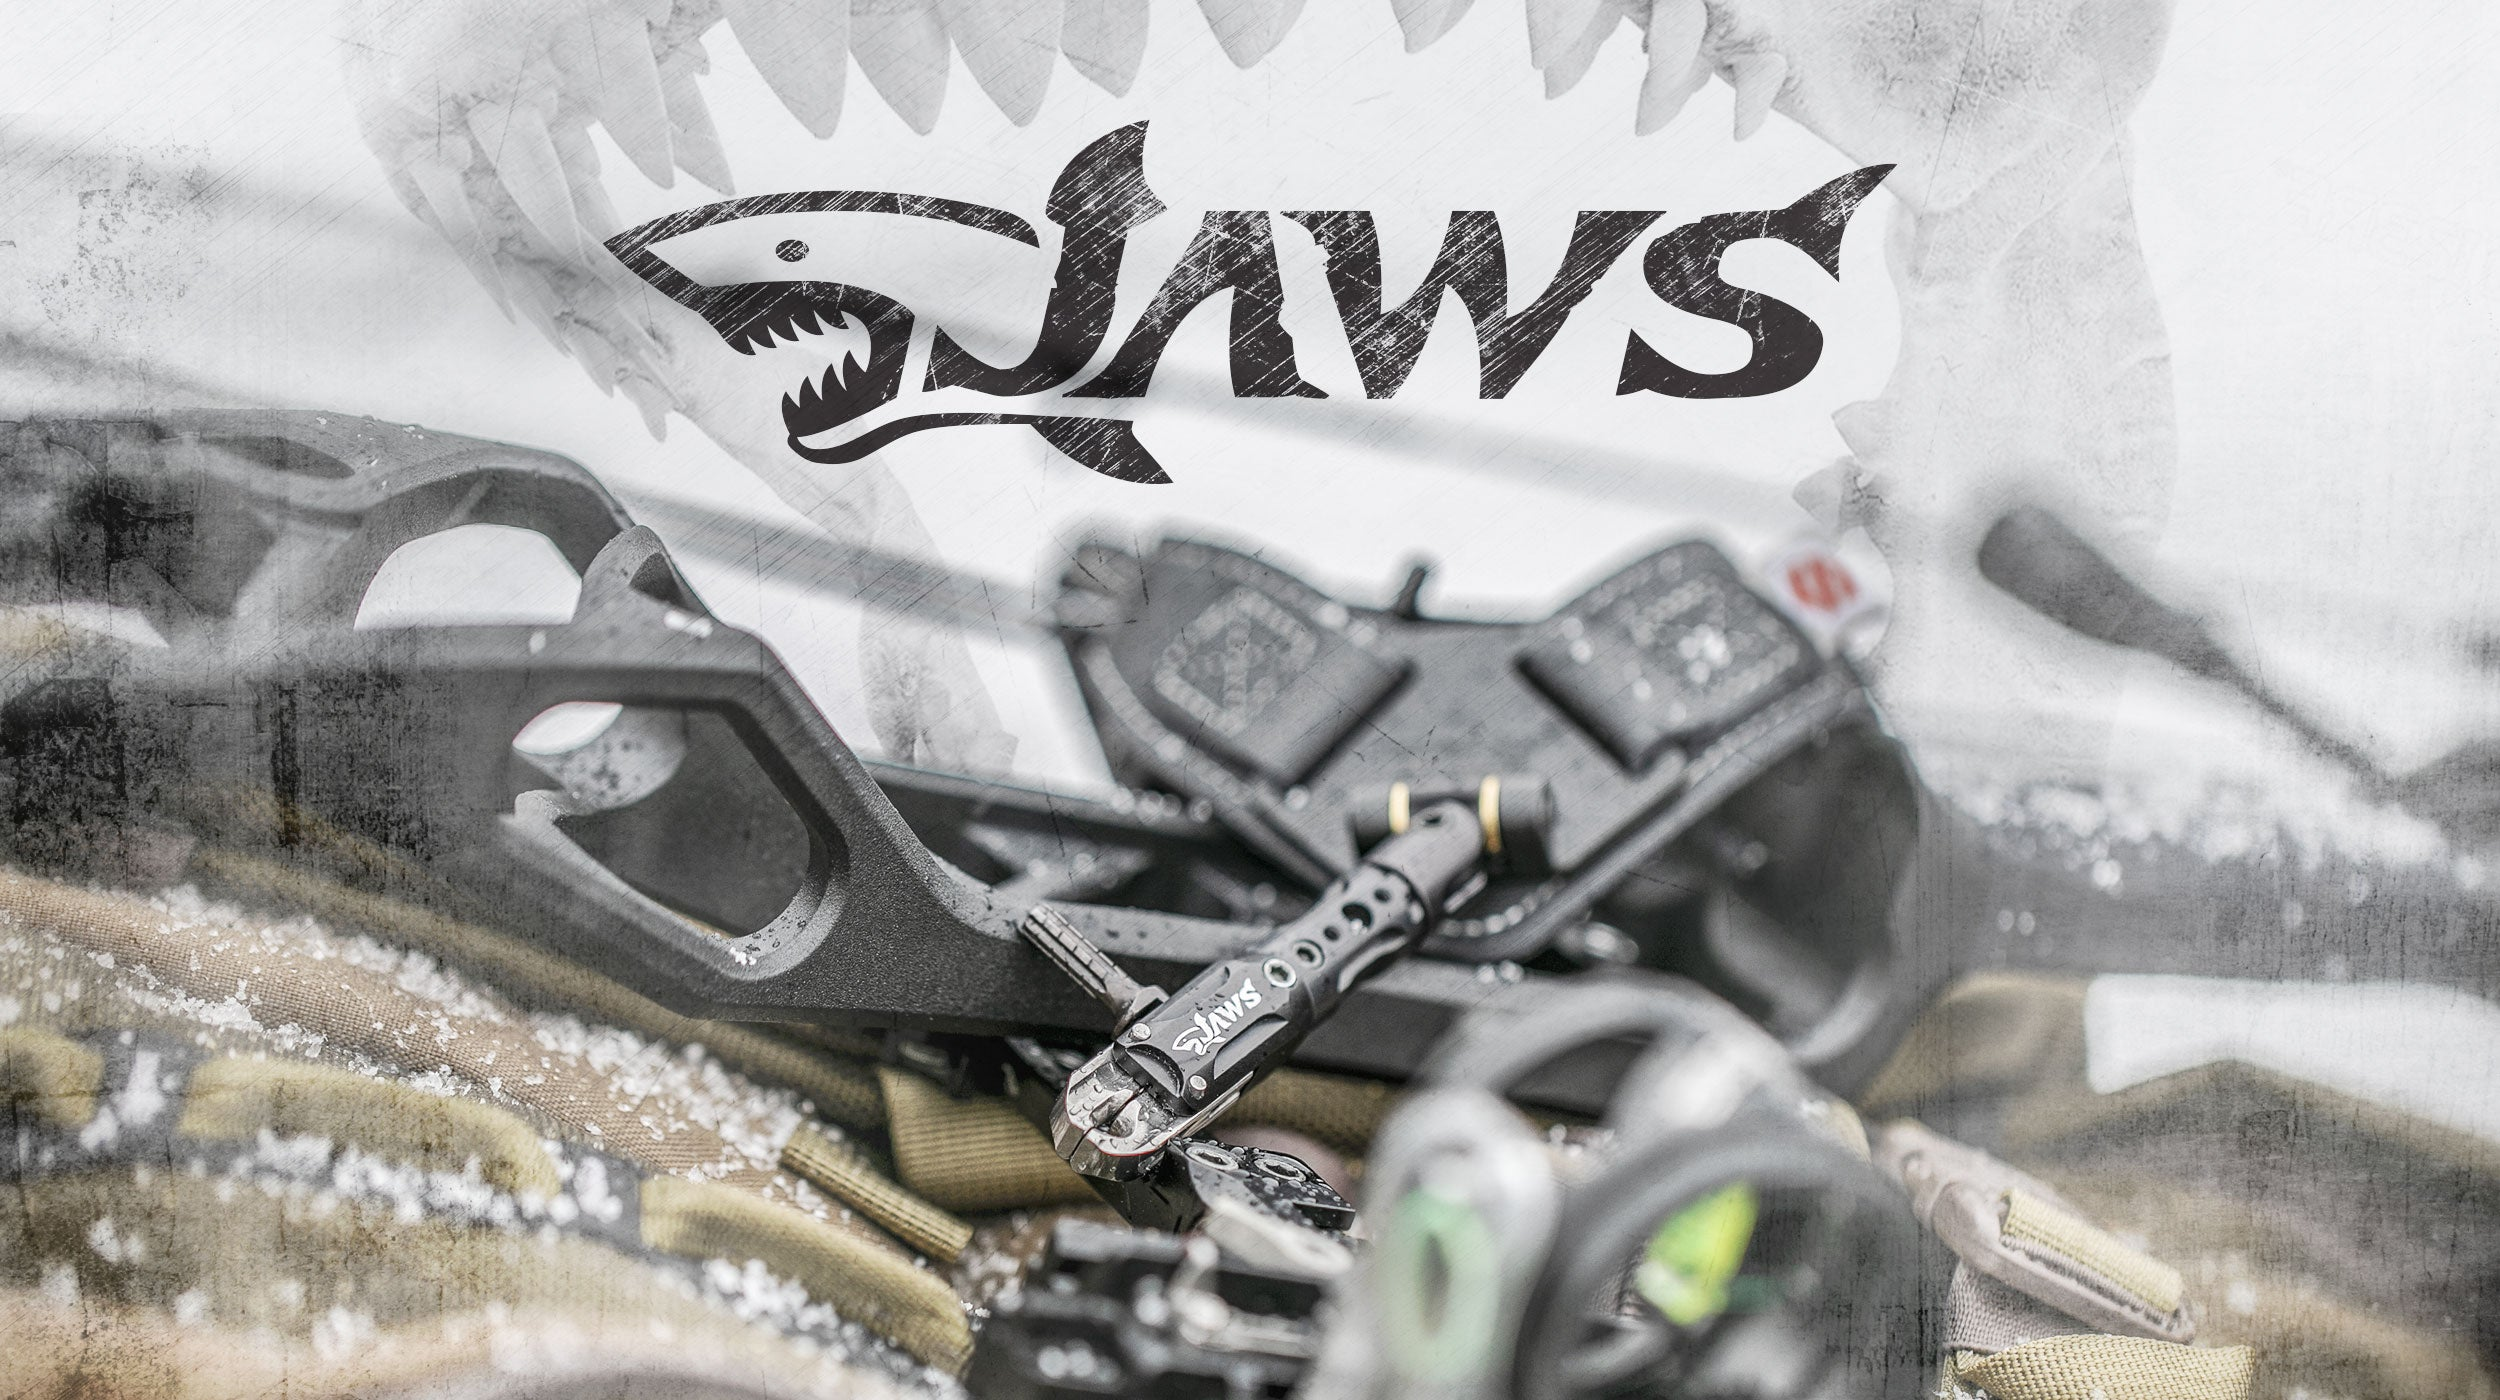 Scott Archery Jaws Release